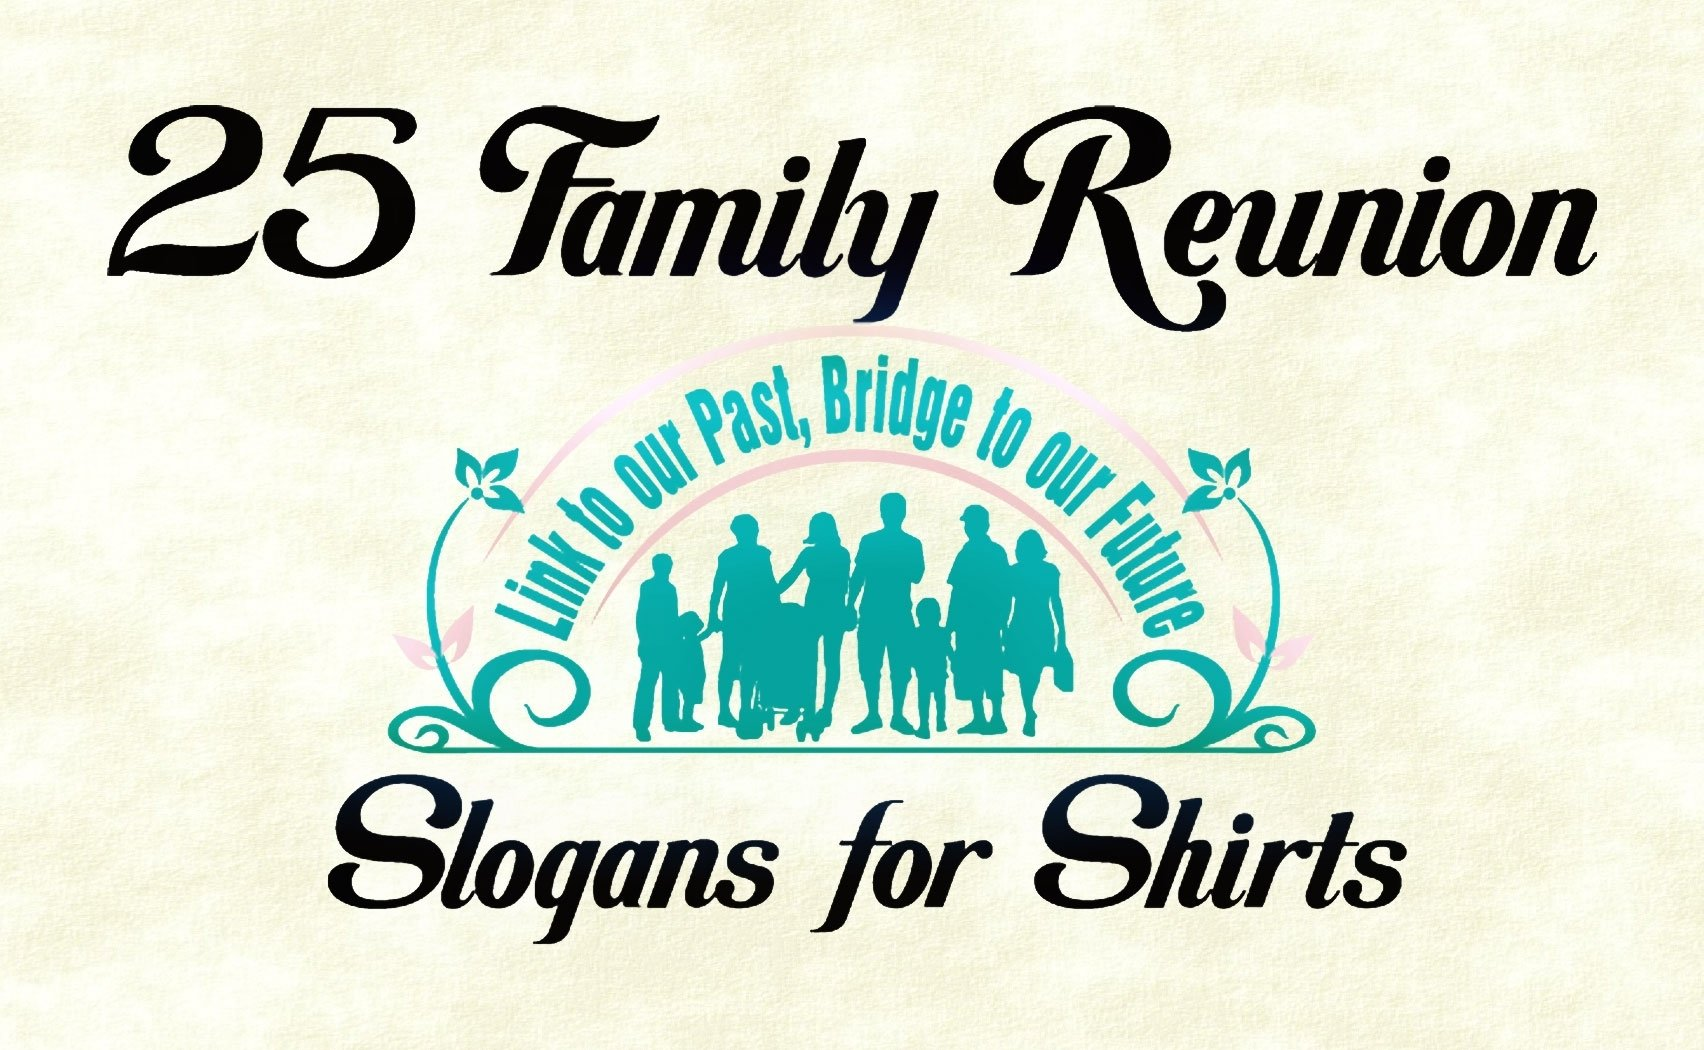 10 Most Popular Family Reunion T Shirt Designs Ideas iza design blog25 favorite family reunion slogans for t shirts 1 2021